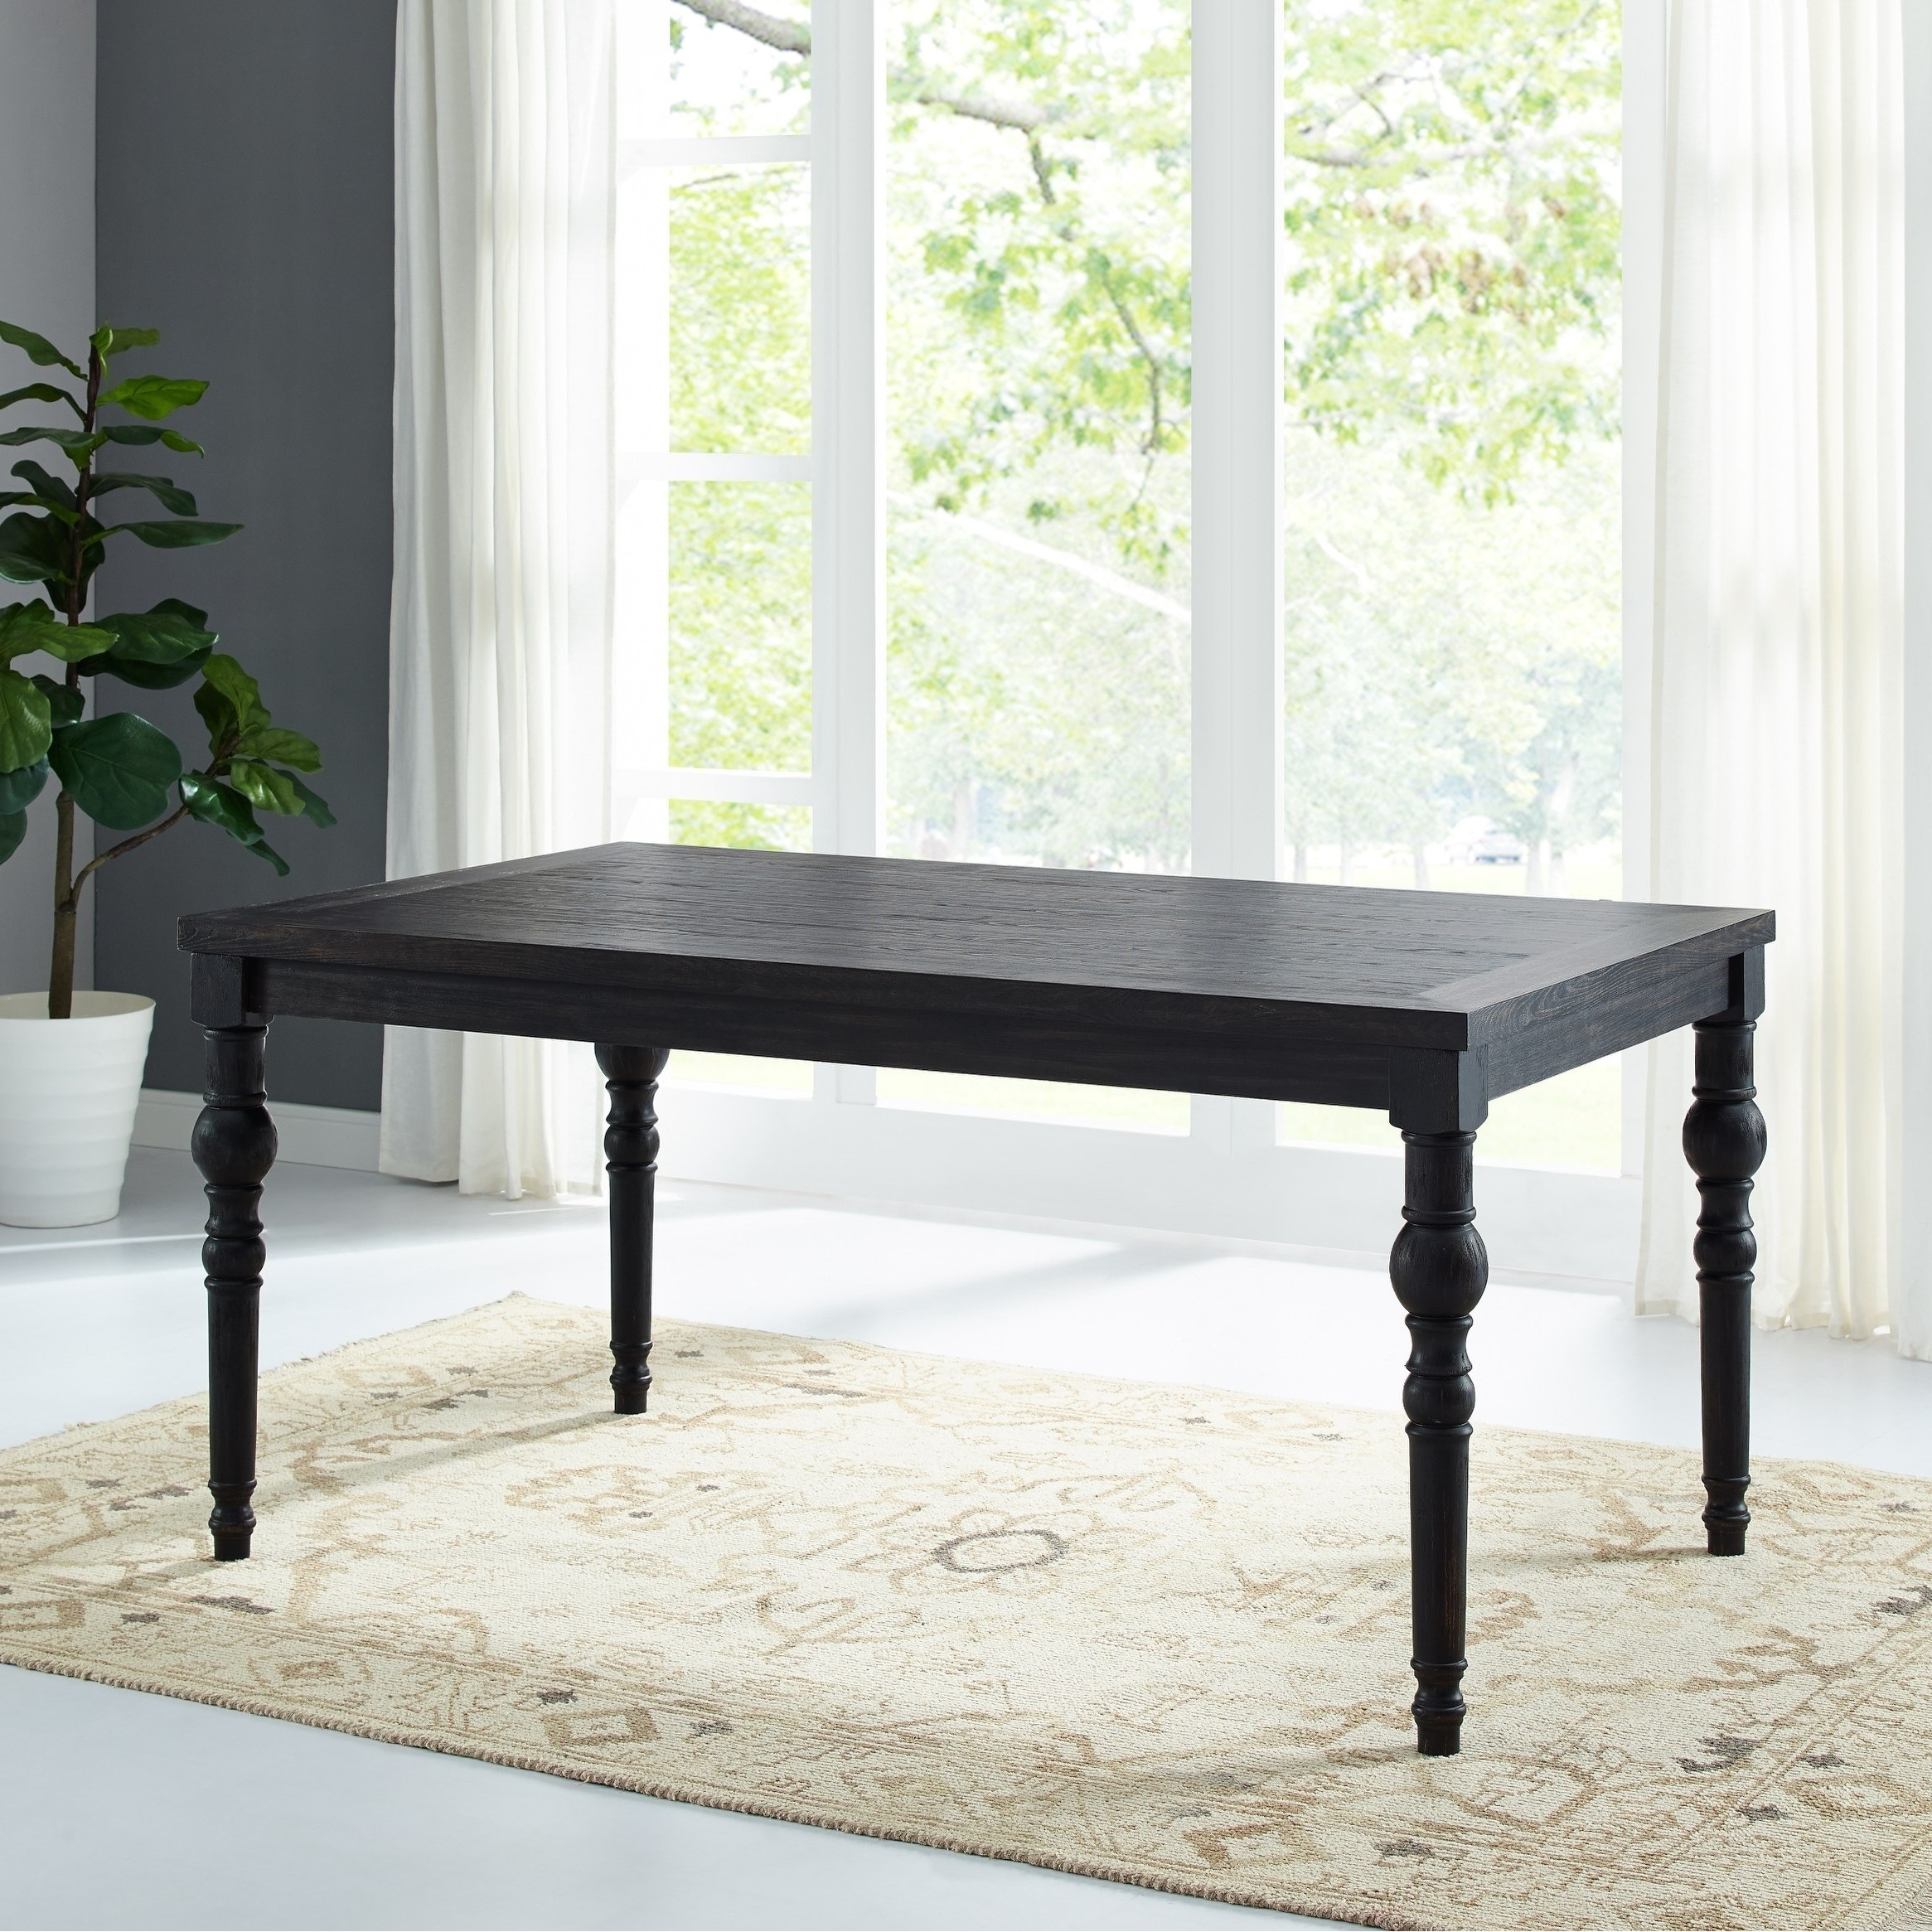 Well Known Leviton Urban Style Wood Dark Wash (Blue) Turned Leg Dining Intended For Acacia Dining Tables With Black Rocket Legs (Gallery 23 of 30)